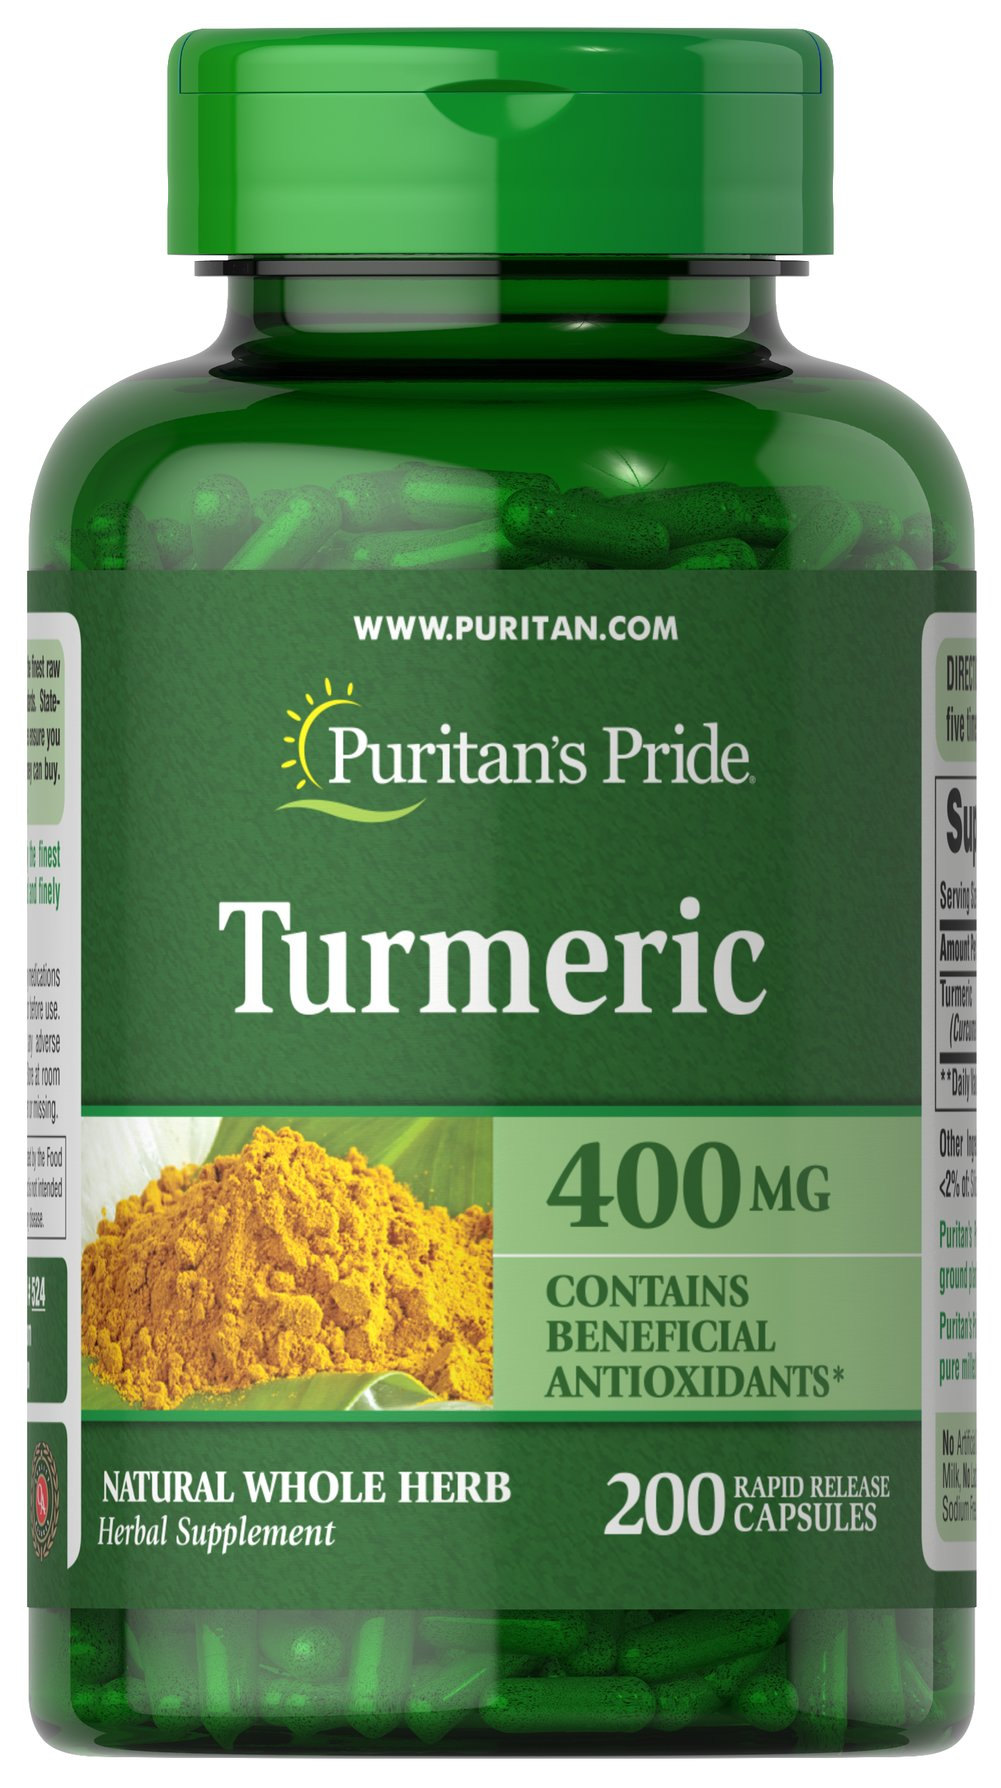 Turmeric 400 mg <p>Turmeric, a common spice used in curry dishes, has become a popular herbal supplement due to its potential antioxidant properties, which may contribute to brain health.** Available in 400 mg capsules, adults can take one capsule three to six times daily with meals. Capsules may be opened and prepared as a tea.</p>  200 Capsules 400 mg $13.99